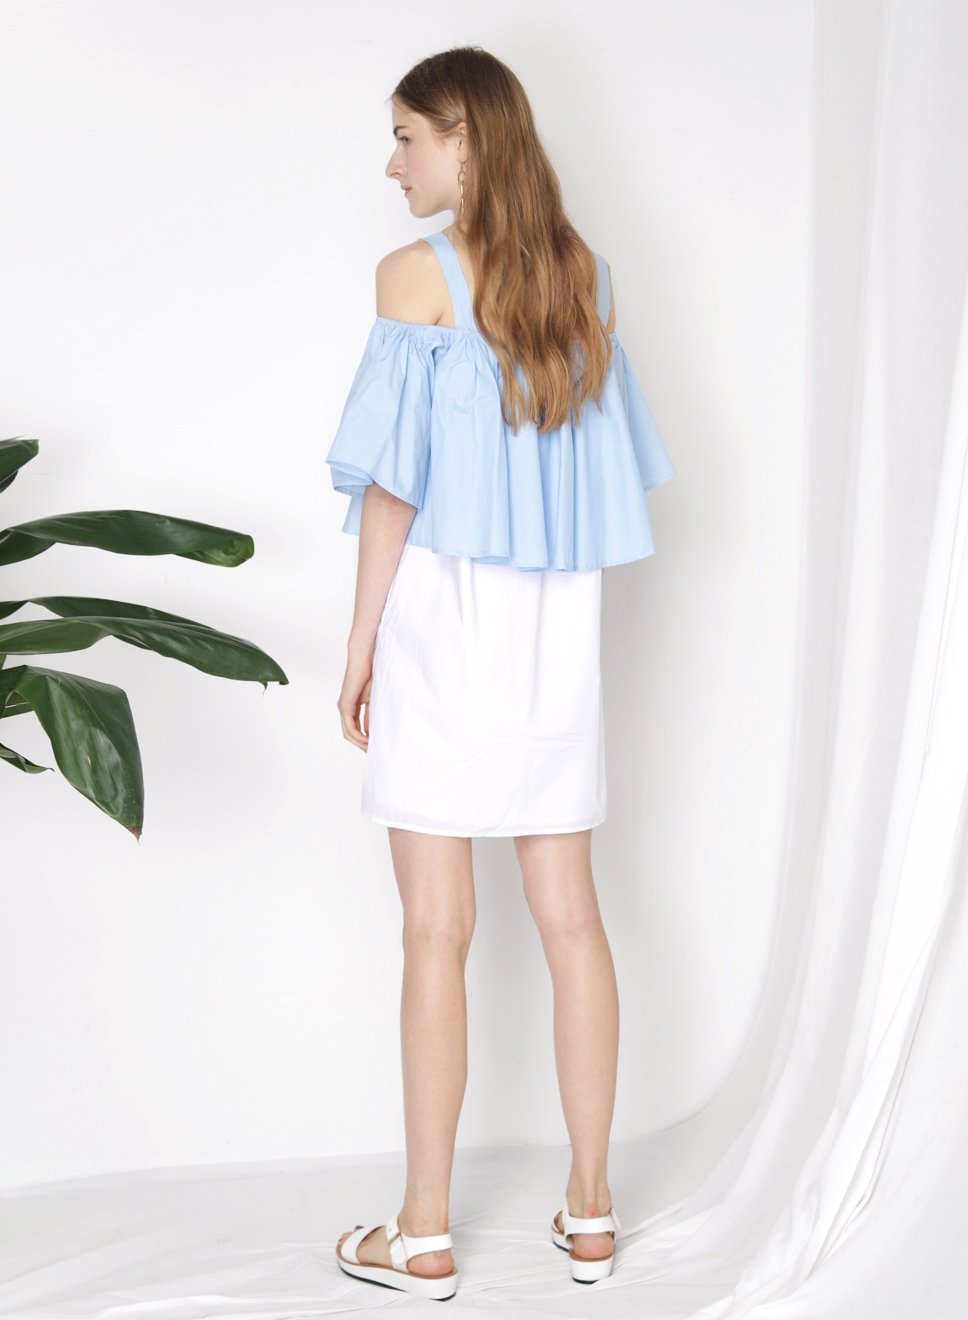 SMITTEN Contrast Cold Shoulder Dress (Blue) at $ 22.00 only sold at And Well Dressed Online Fashion Store Singapore